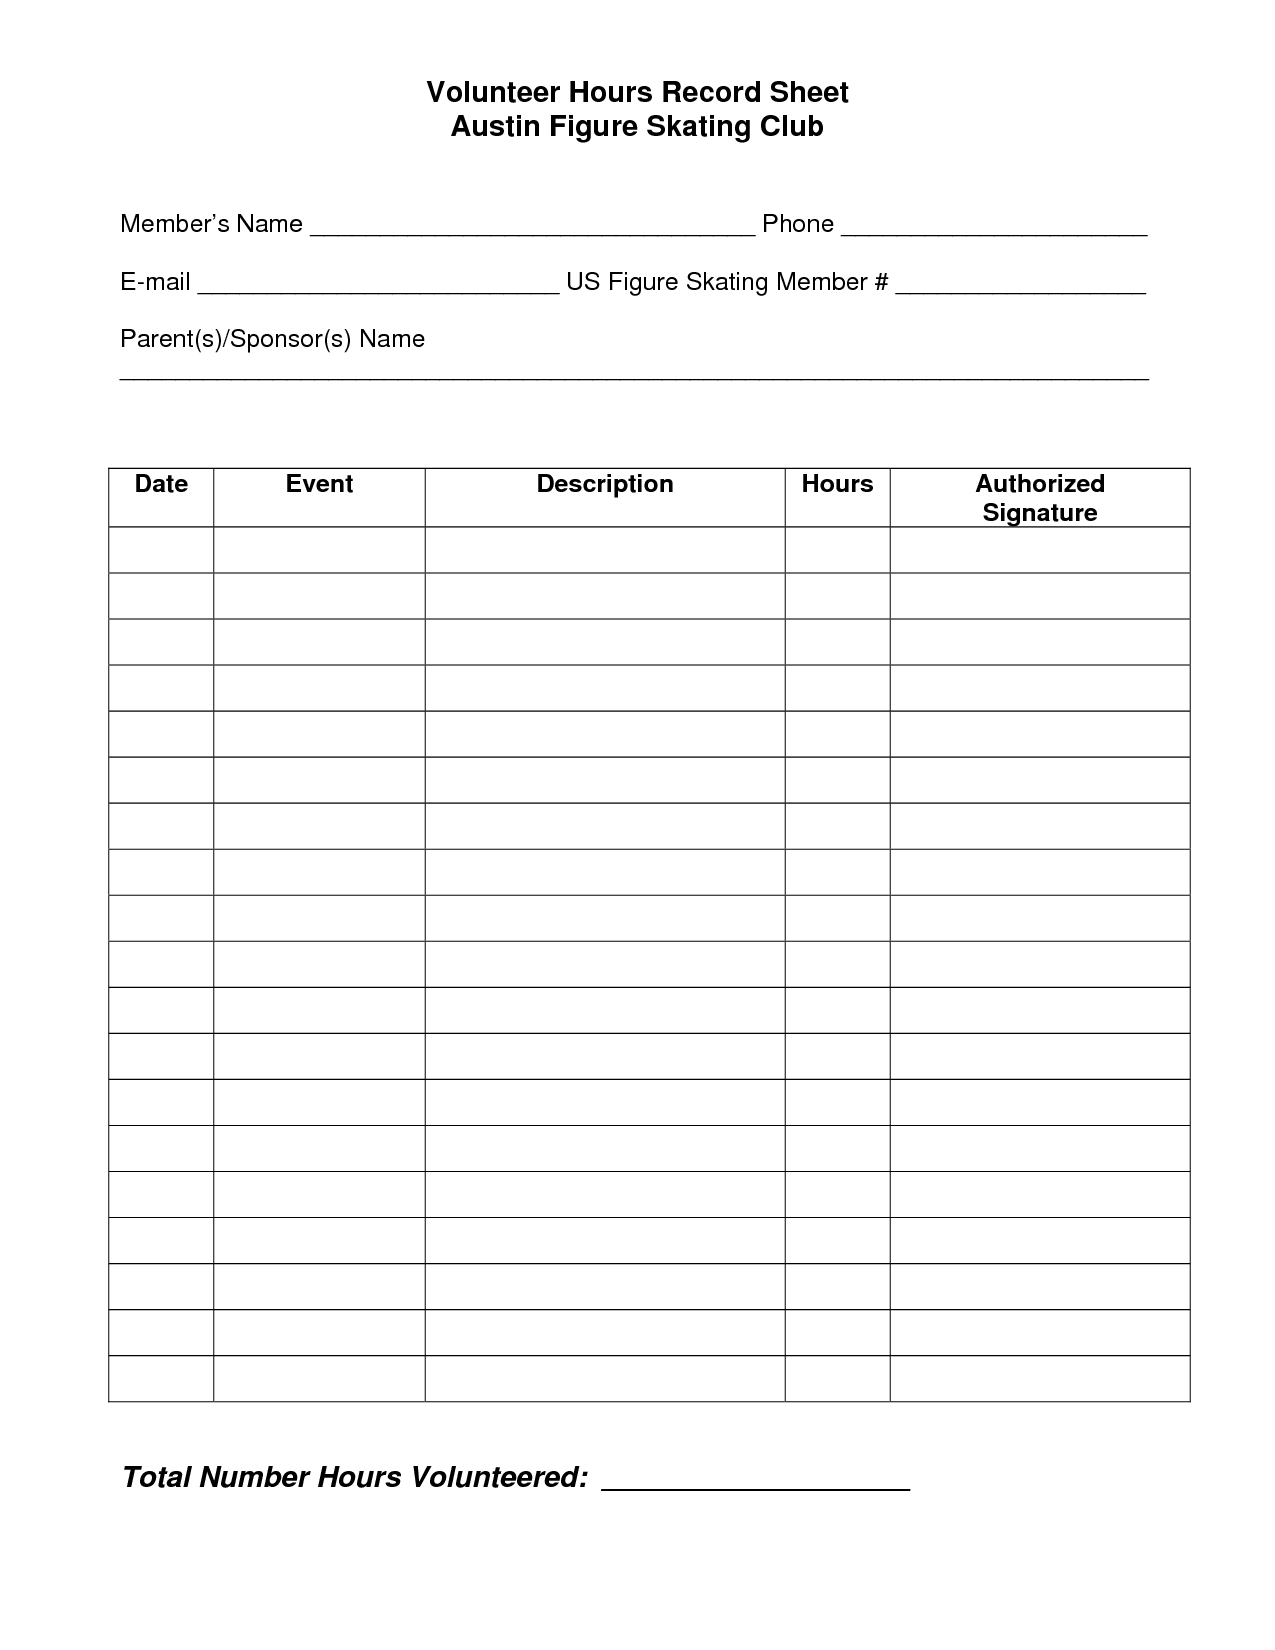 Volunteer Hours Log Sheet Template | Beta Club | Essay Writing Tips - Free Printable Volunteer Forms